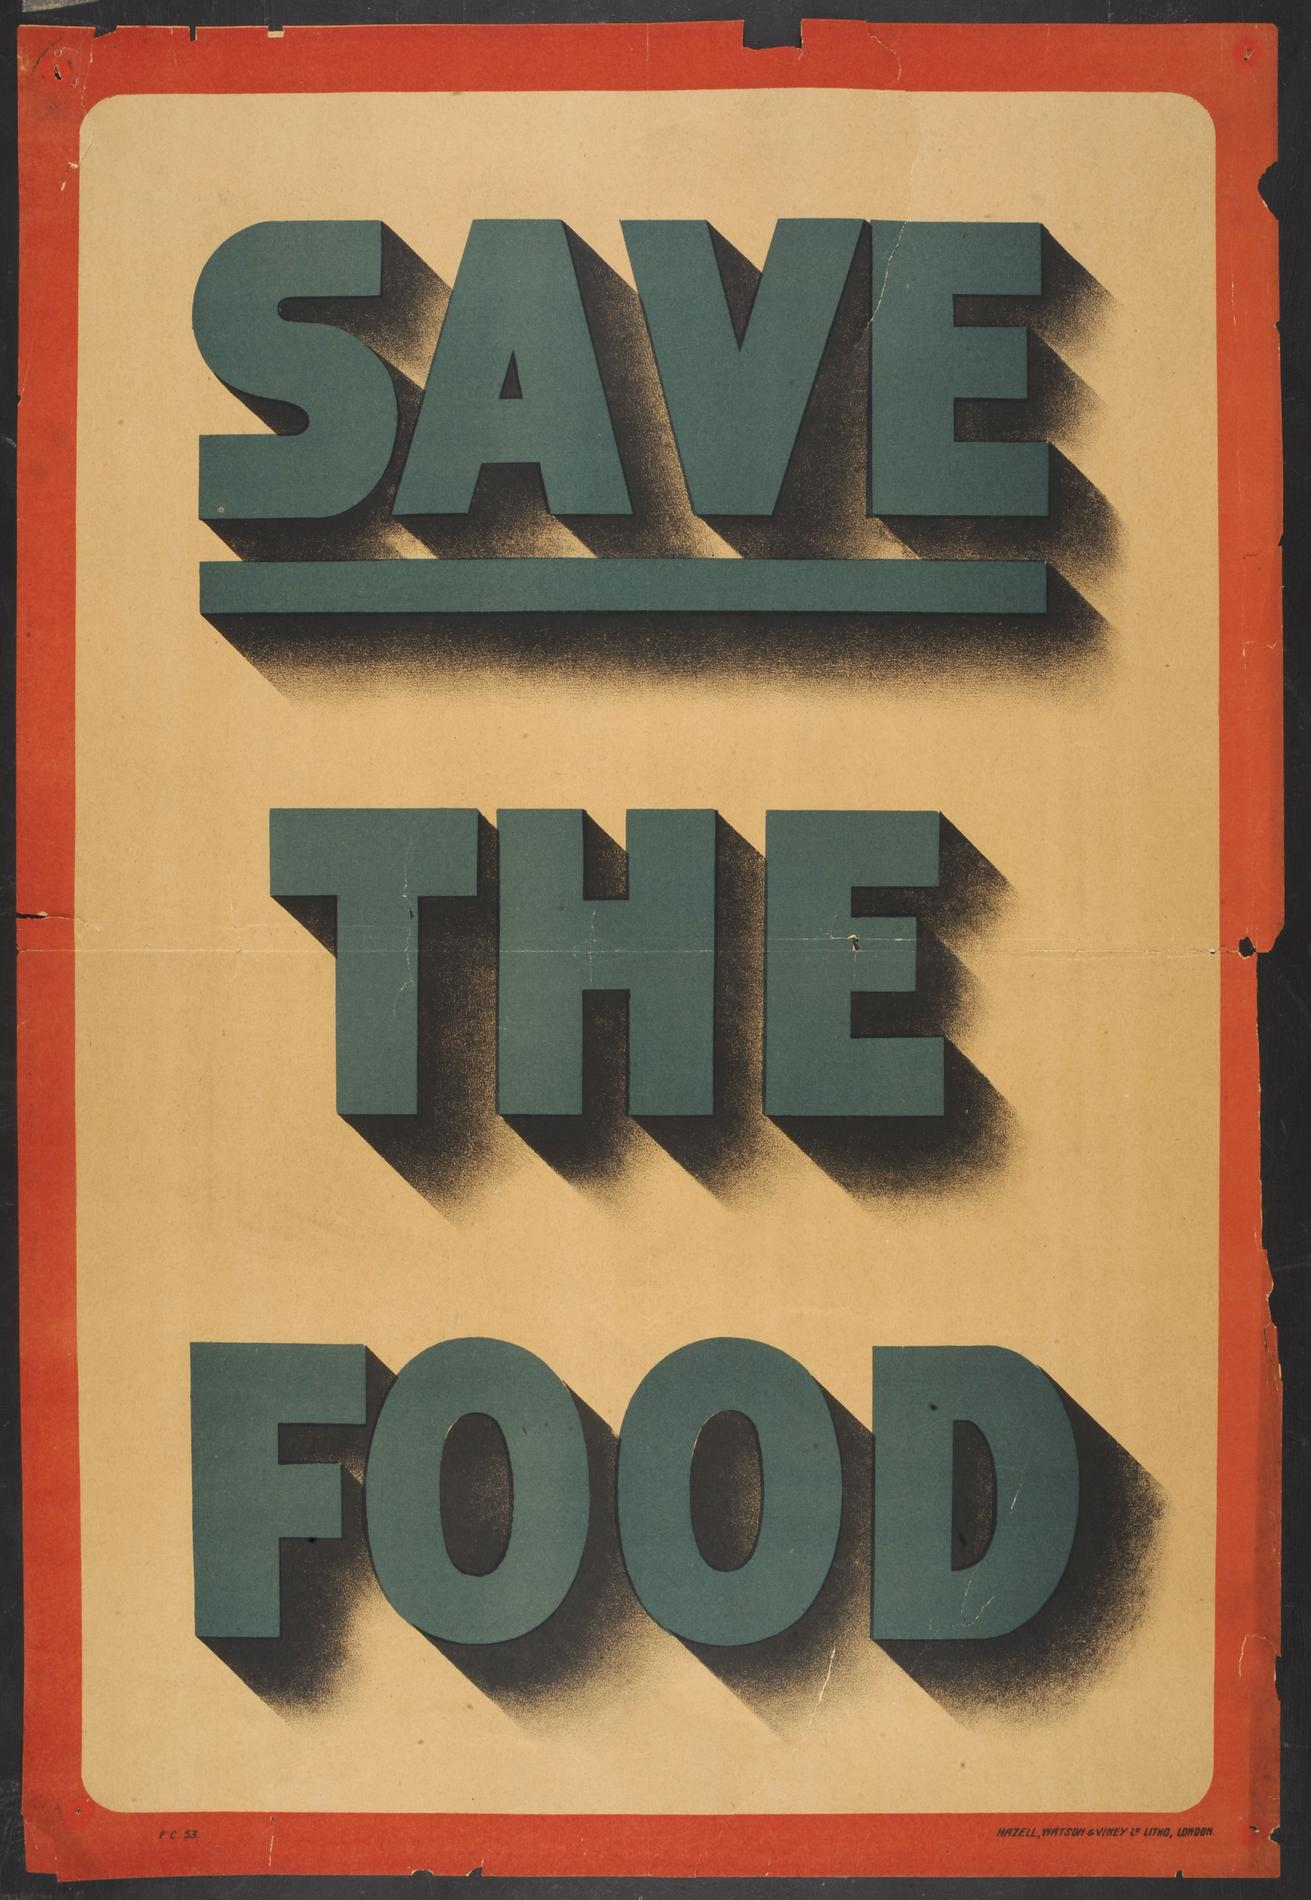 Save the Food (Poster)